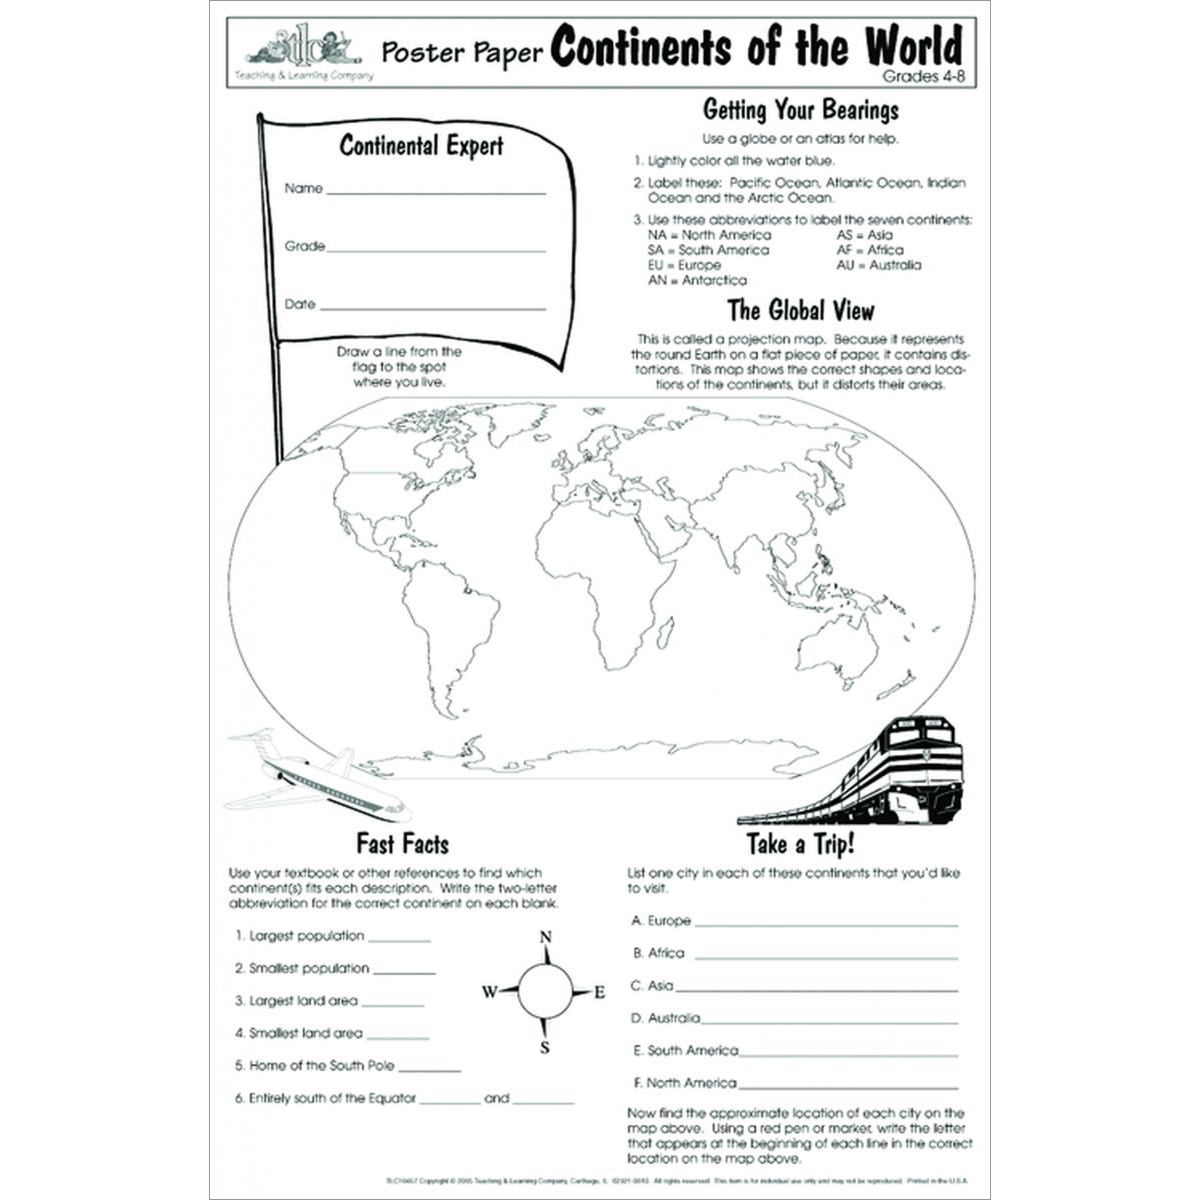 Continents of the World Poster Papers